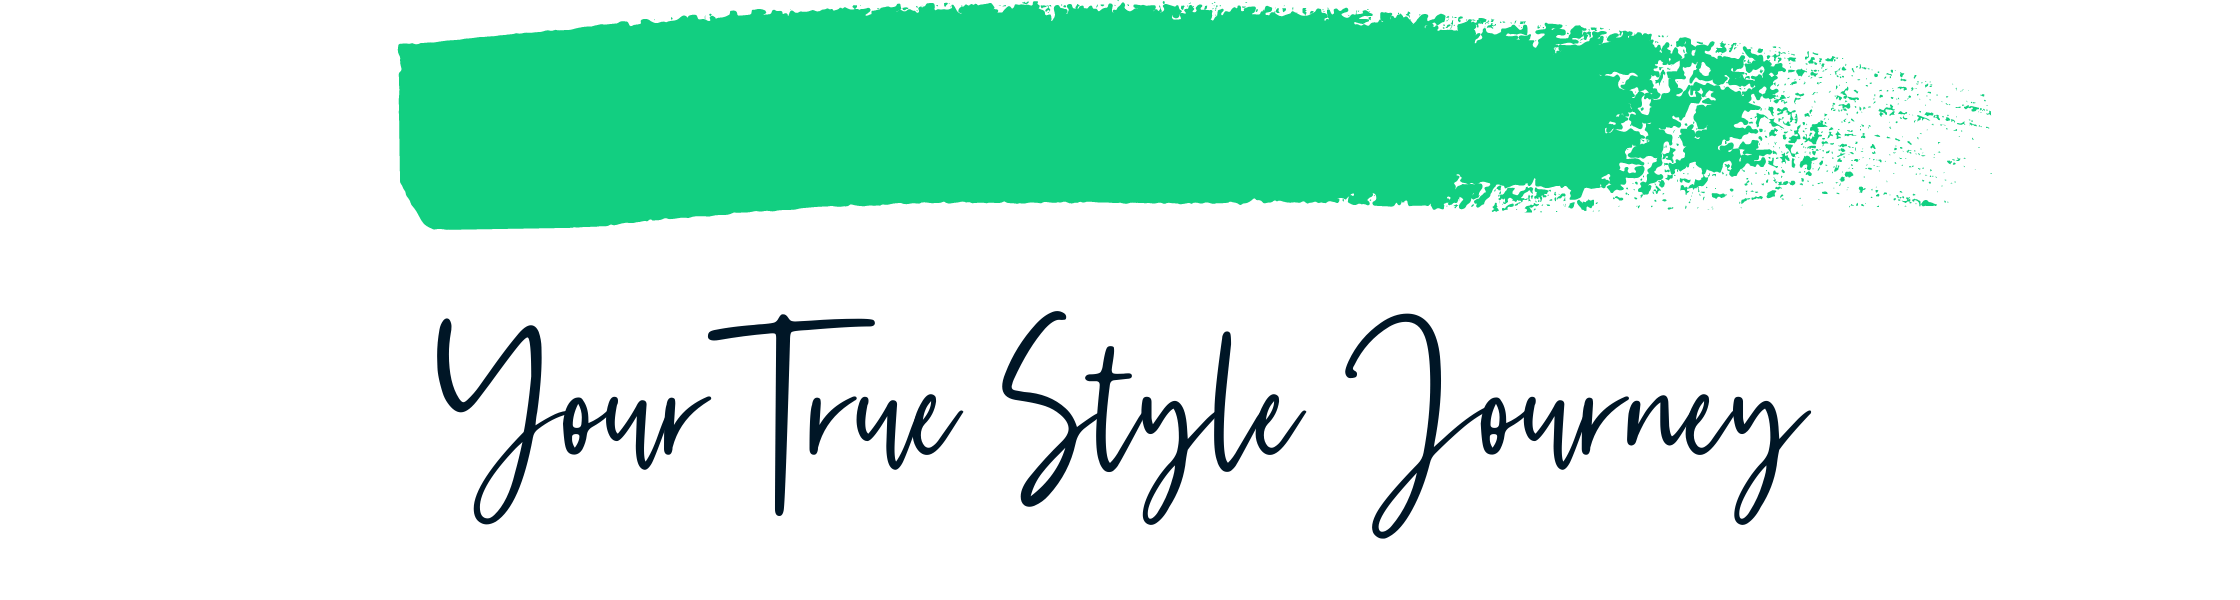 Your True Style Journey